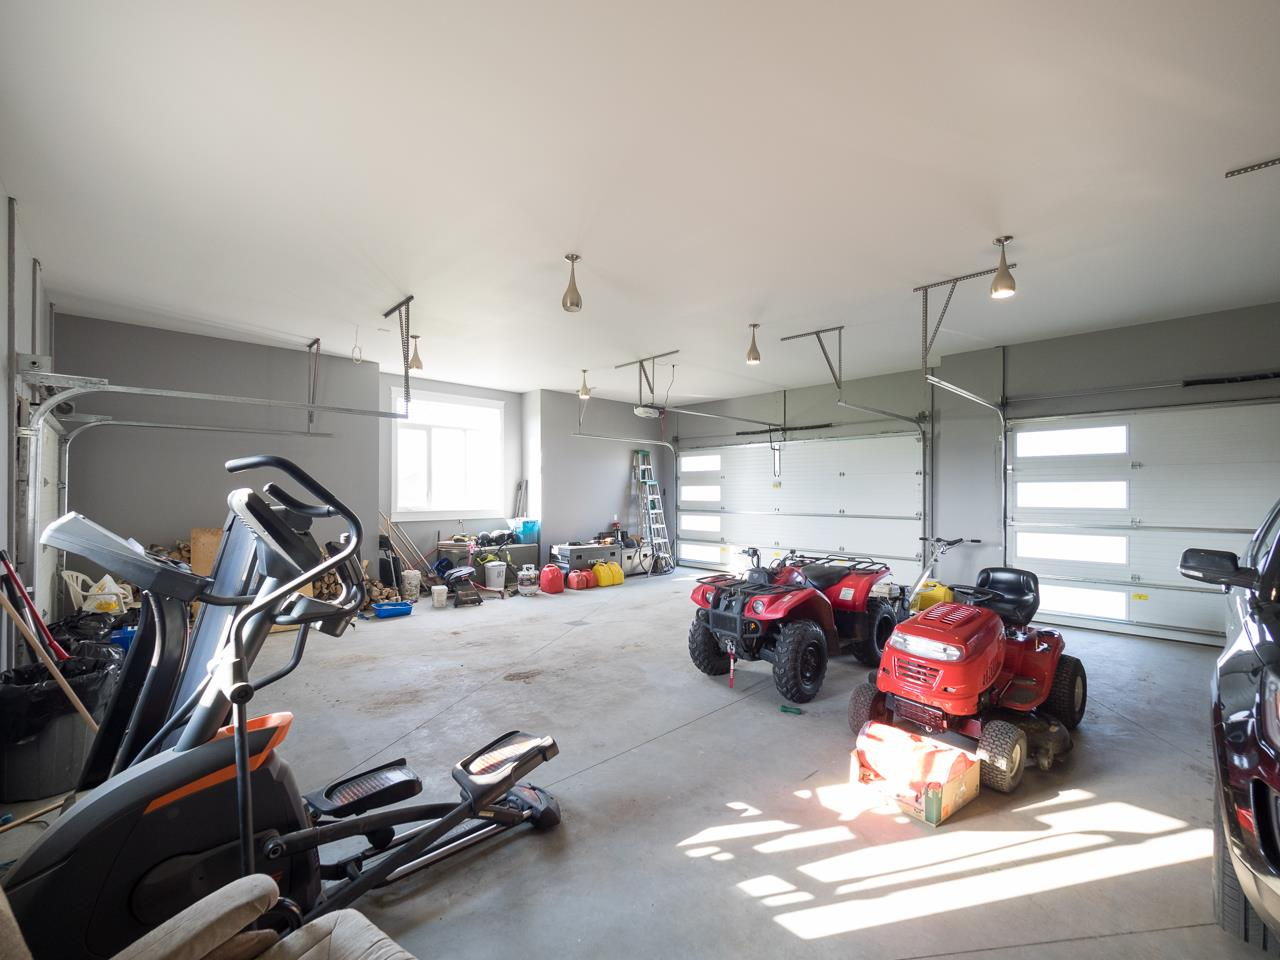 Huge 4 car garage, heated and insulated with 220 V power.